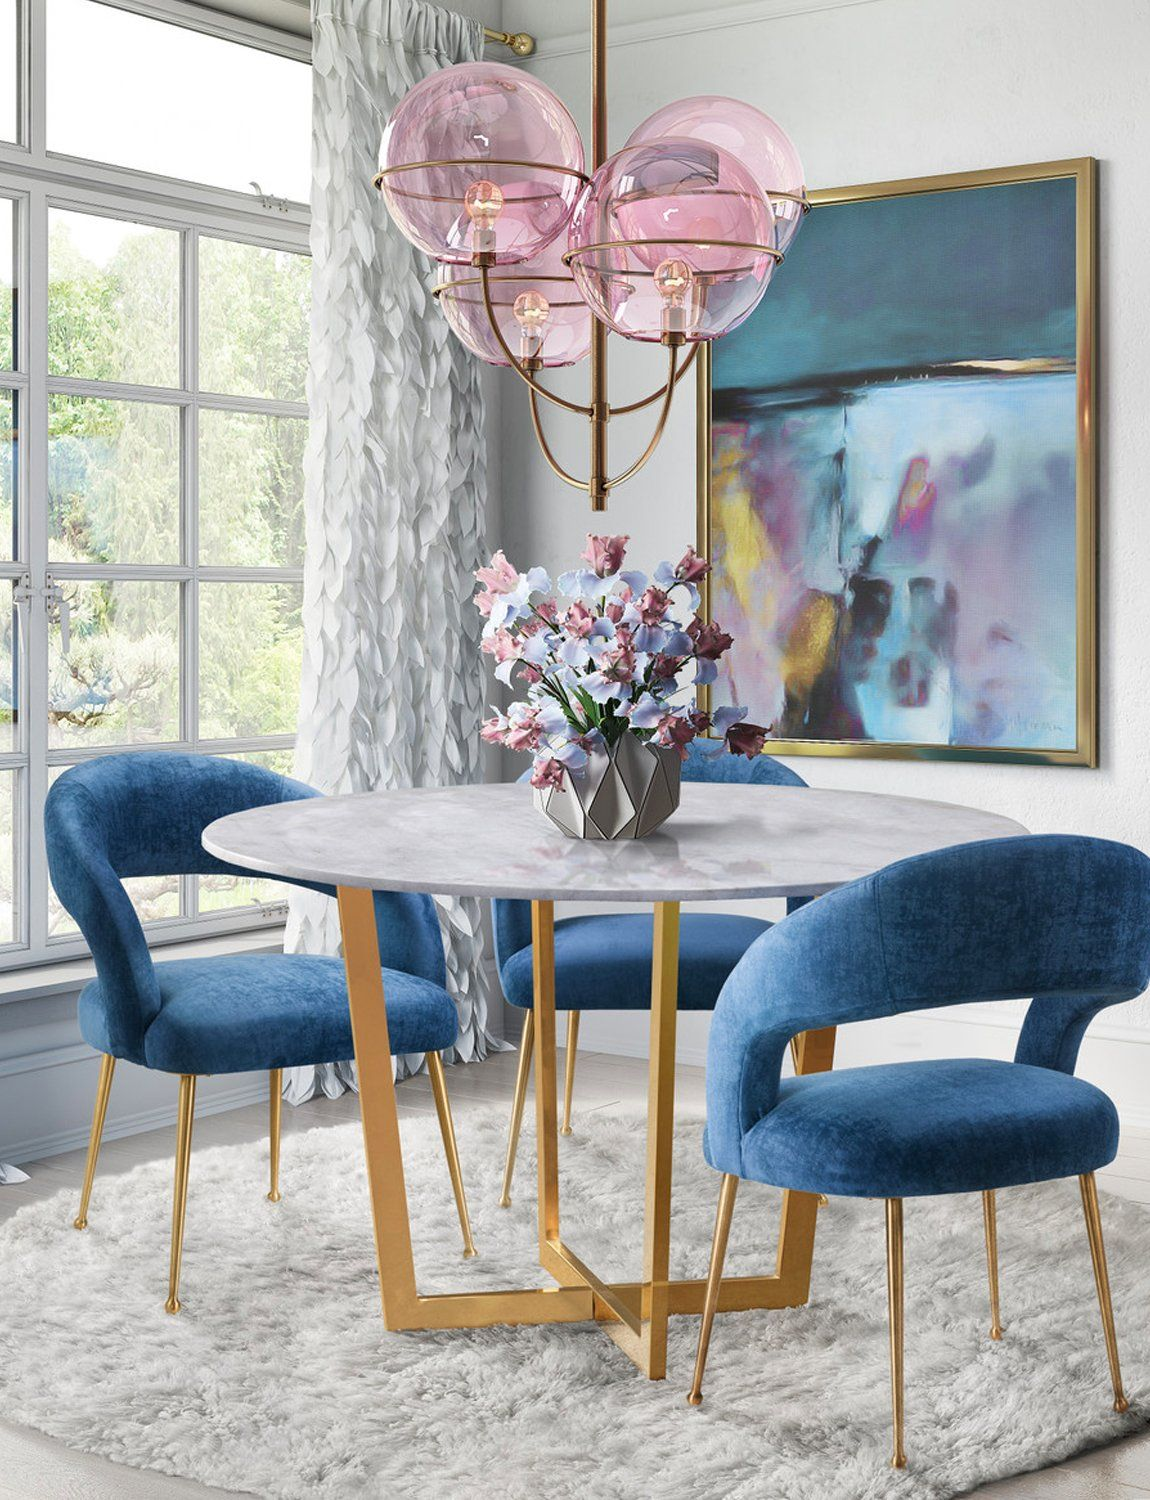 Racoon Dining Chair - blush